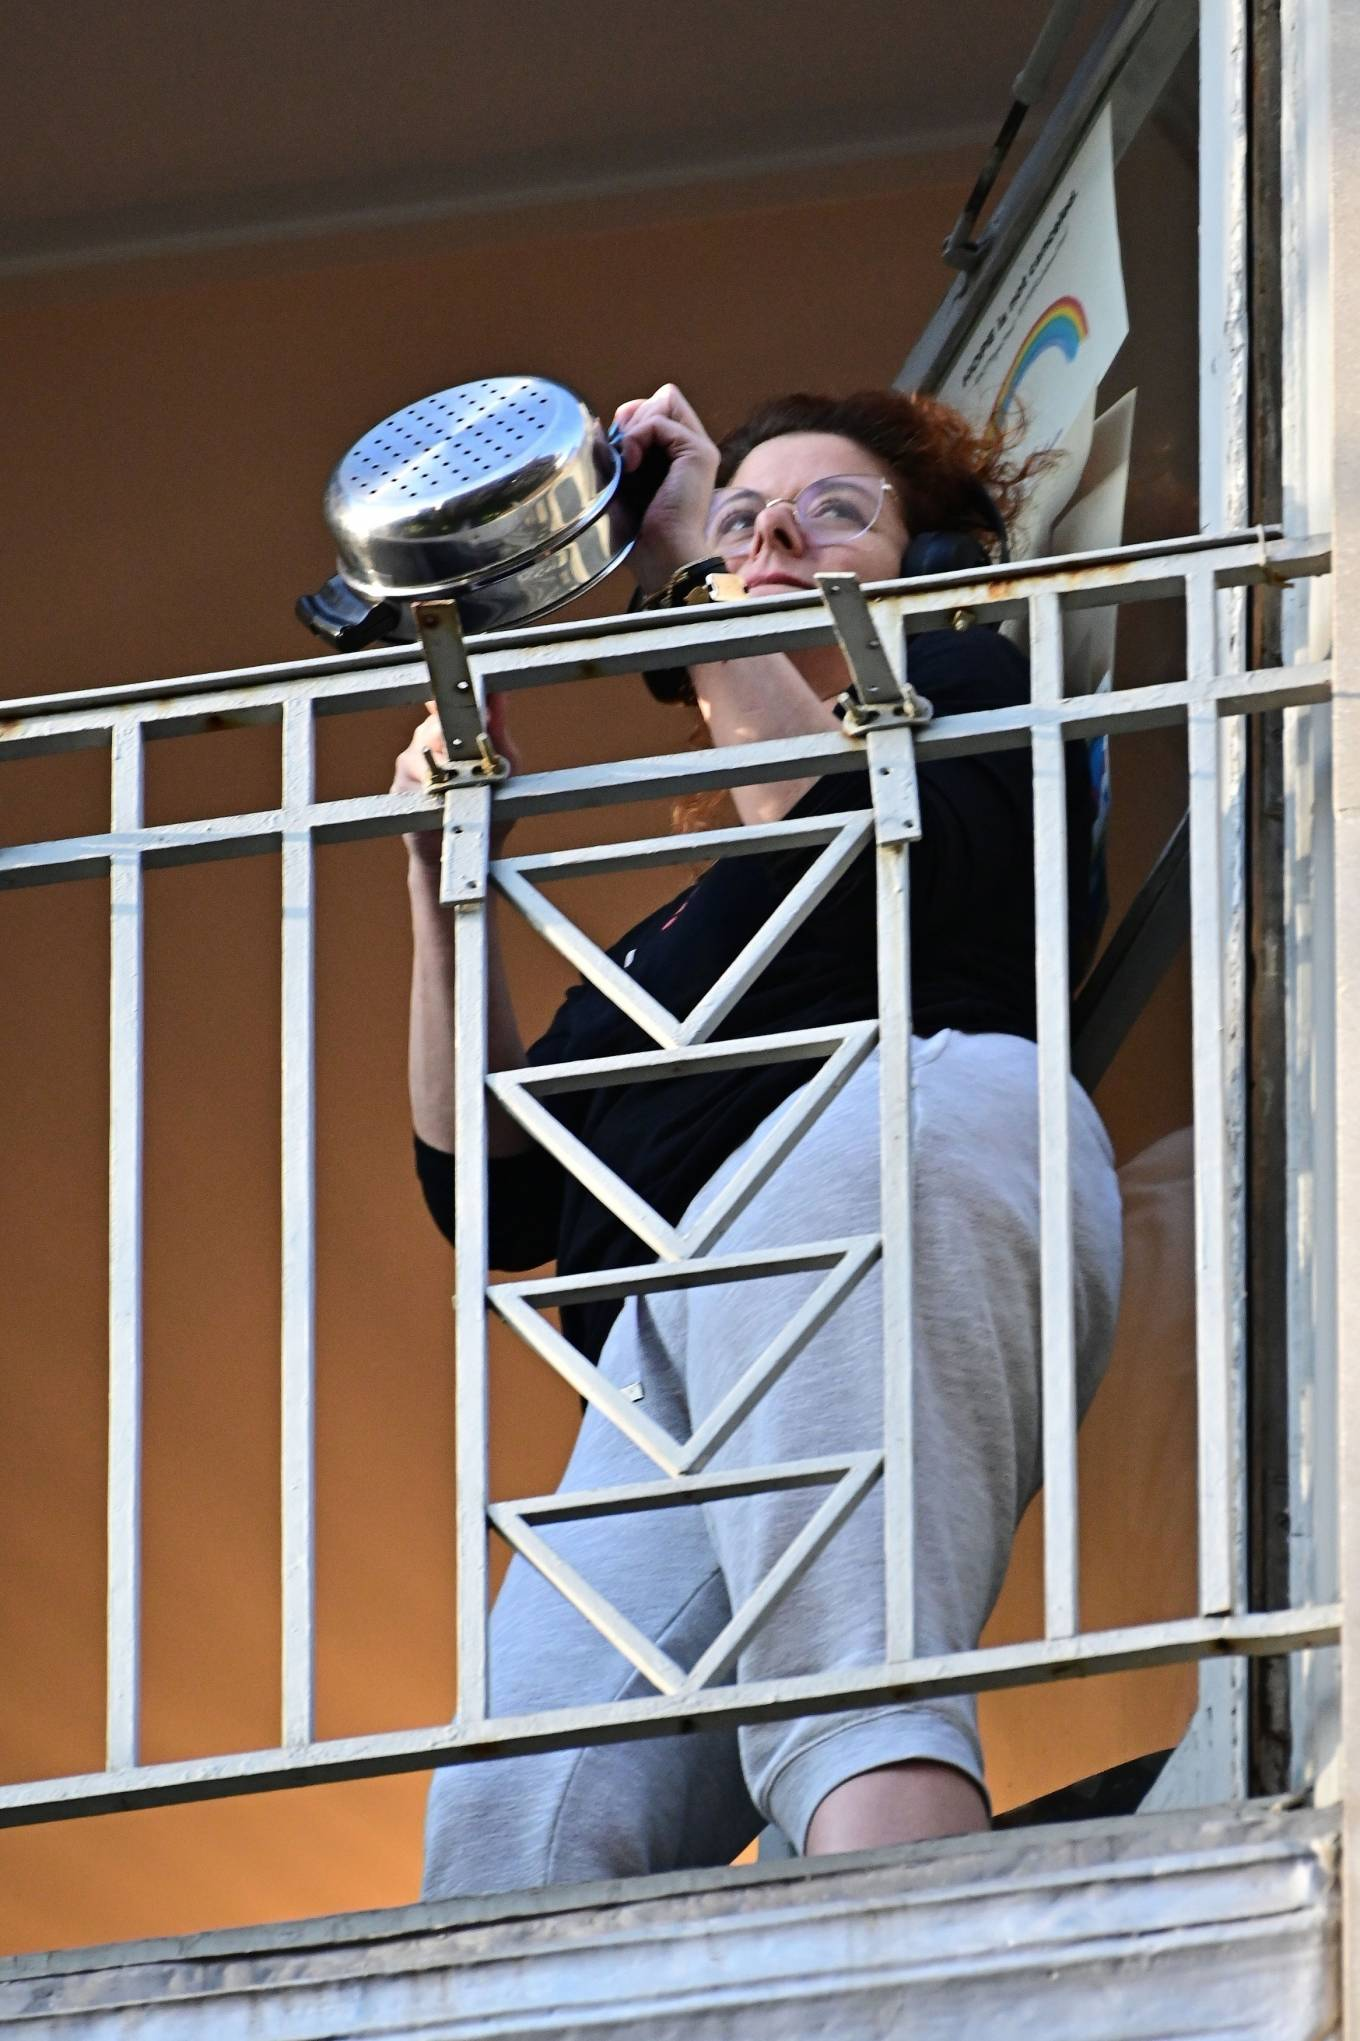 Debra Messing - Sports headphones while cheering for first responders on her NYC Balcony